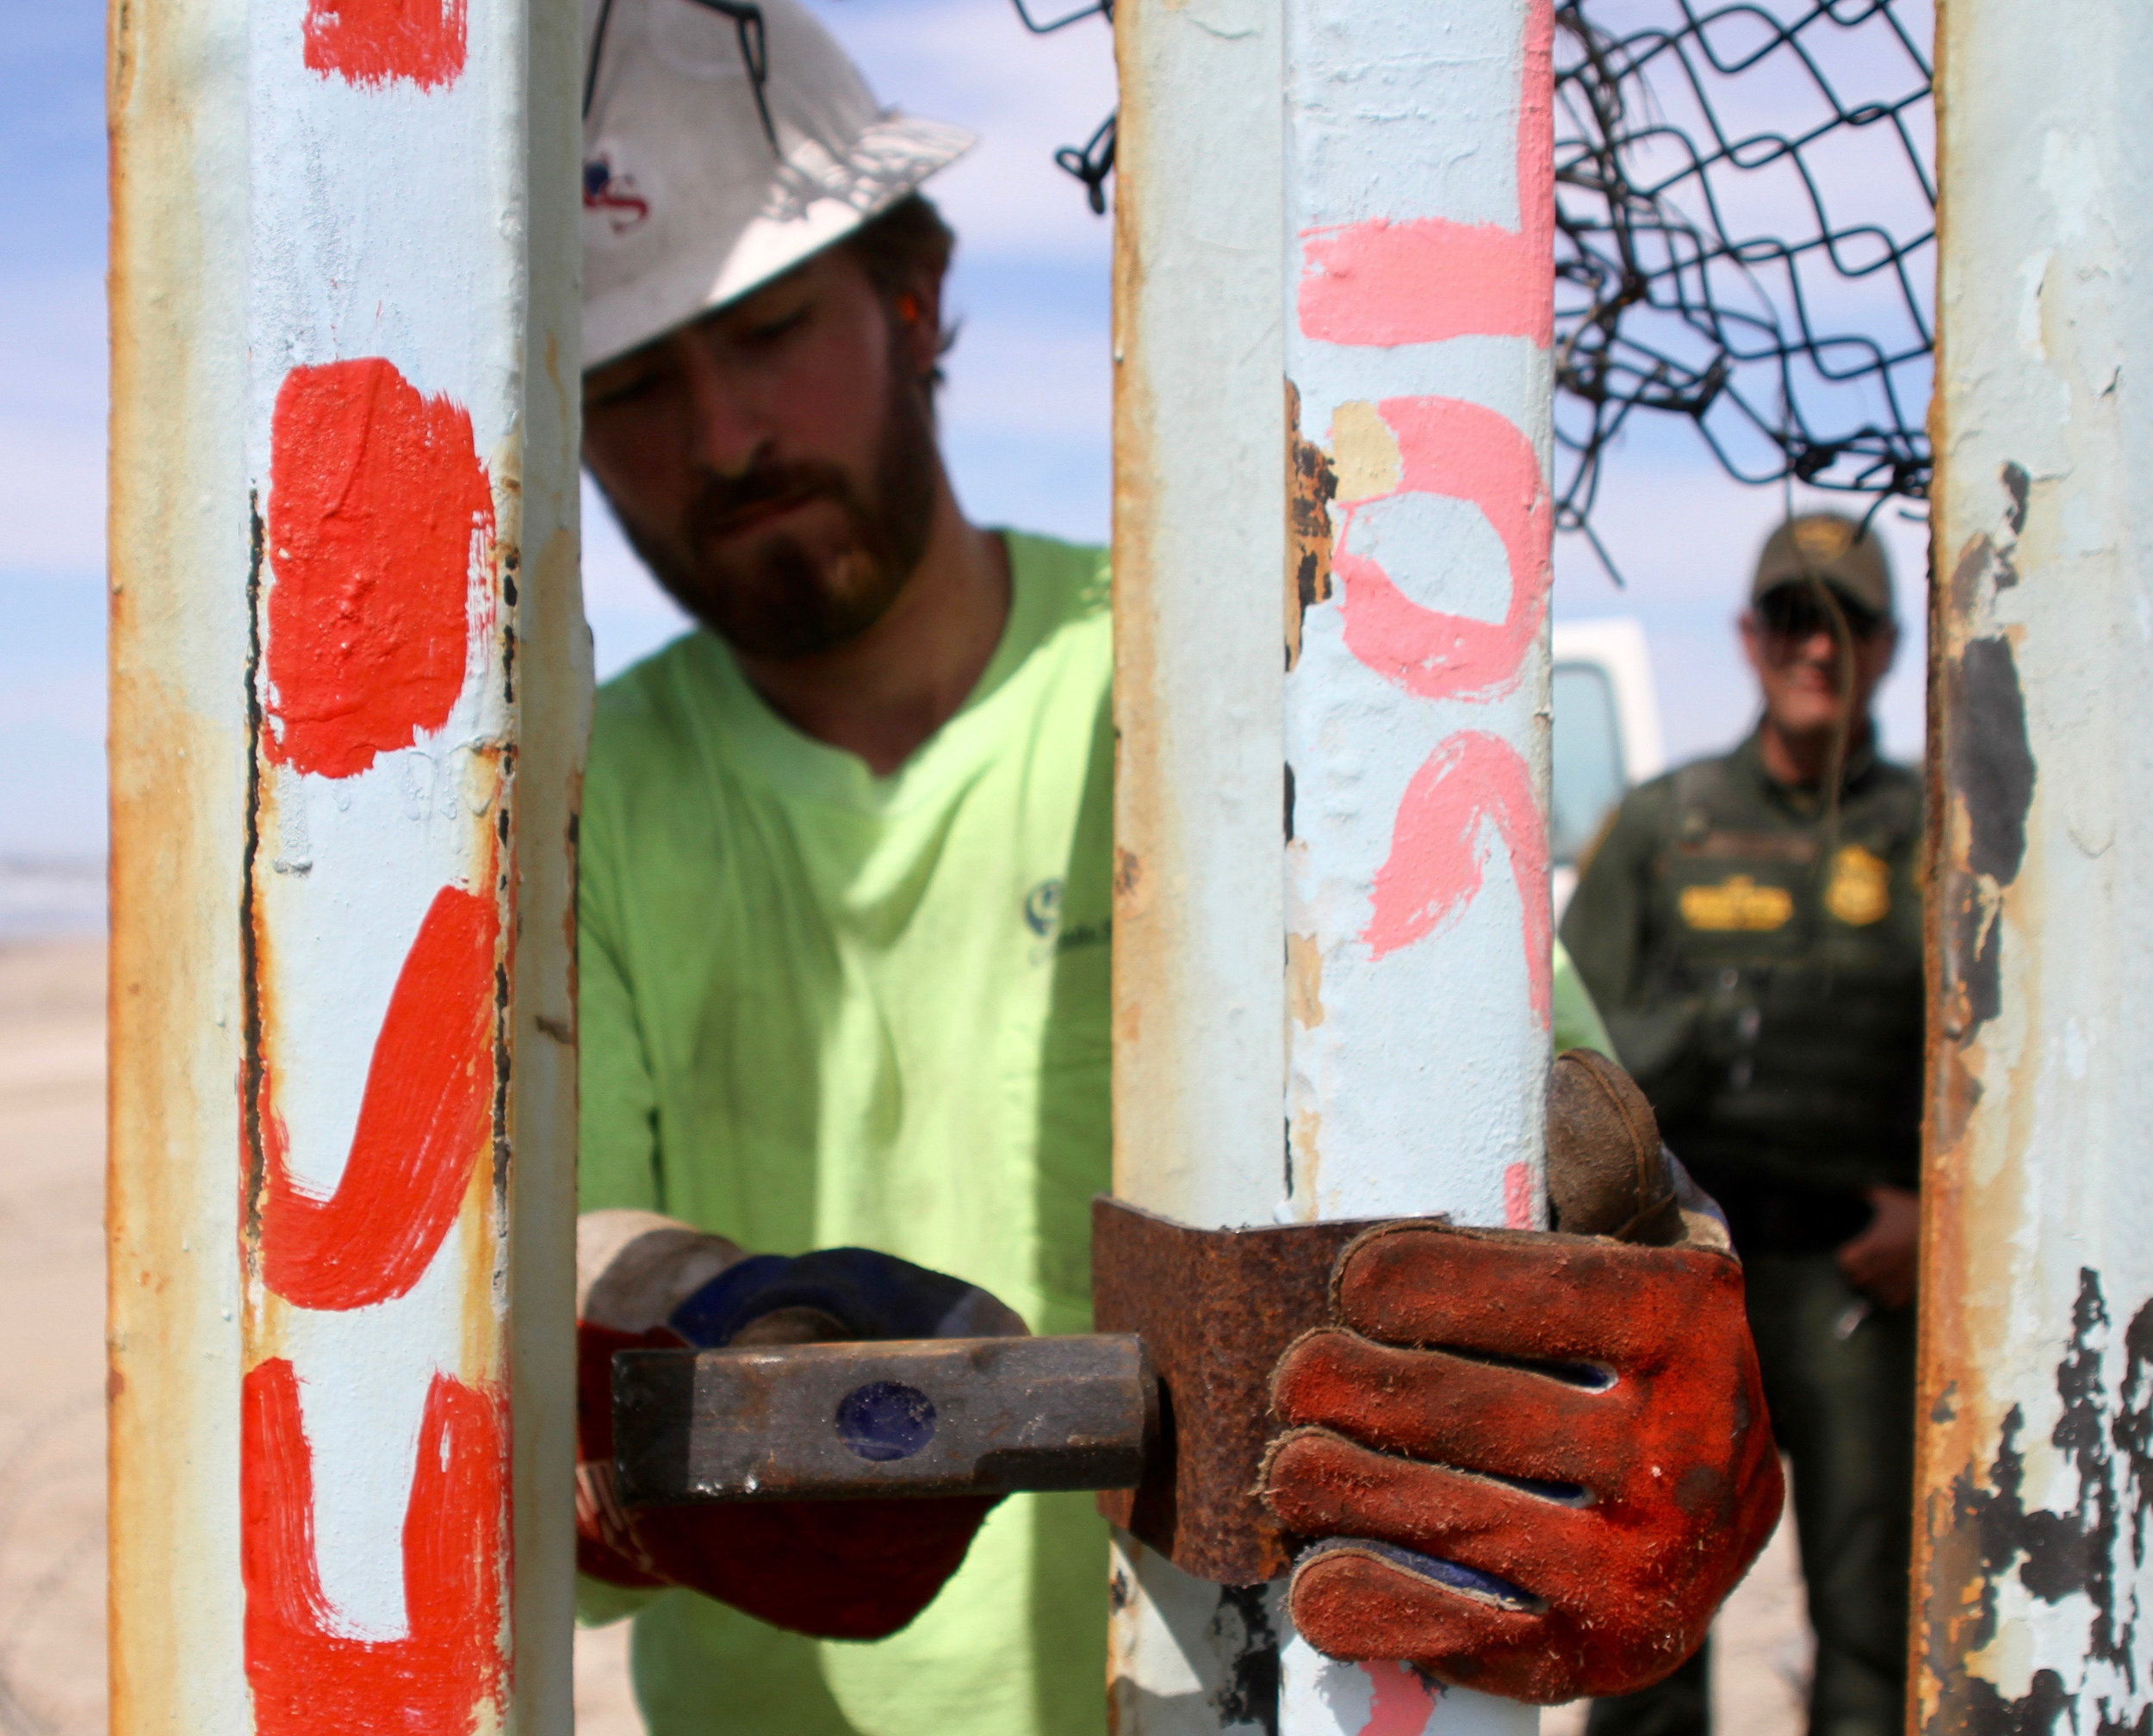 "A Cerrudo Services construction worker hammers a piece of rusted steel onto the border wall in Playas de Tijuana while a Border Patrol agent watches on standby on Friday, March 15, 2019 in Tijuana, Mexico. Cerrudo Services is a ""construction and service contractor specializing in federal government contracting,"" according to the company's website. The construction on this section of the border wall comes after two different incidents of significantly large groups of migrants crossing through the border wall between gaps and openings on Thursday, March 14 and on Friday, March 15. ( Ryanne Mena / The Corsair )"